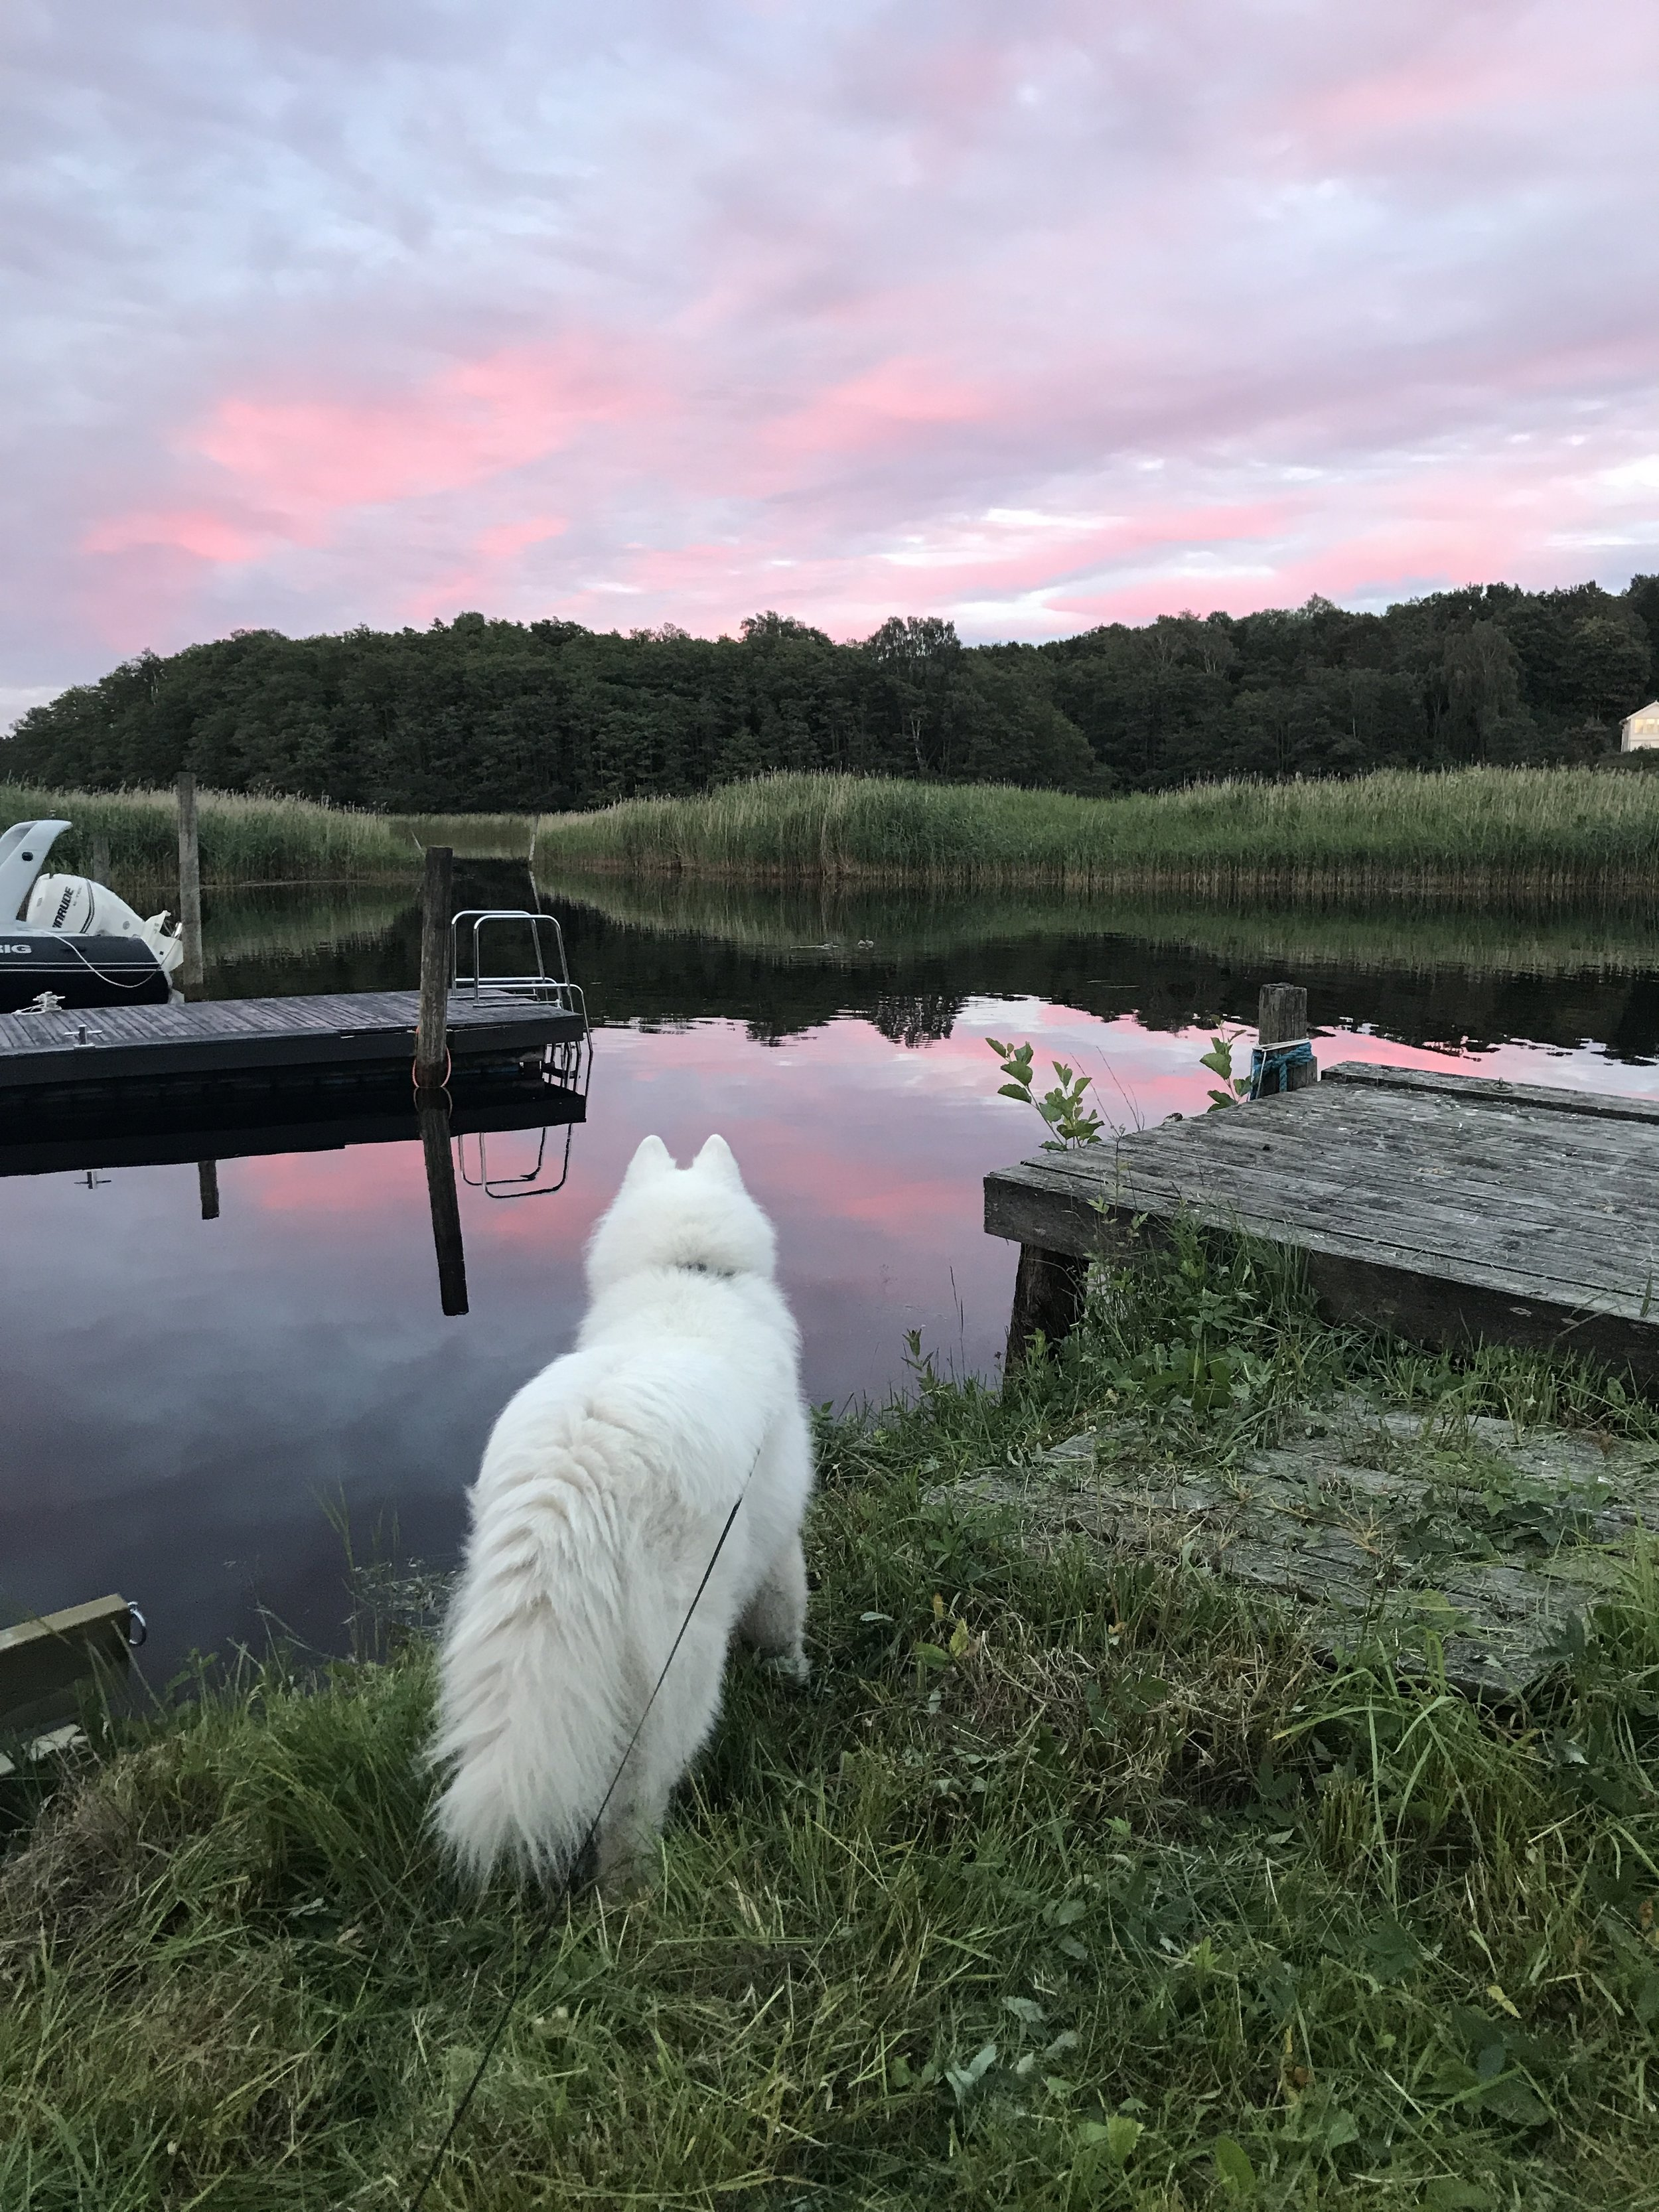 Here's a bonus pic of my dog for making it through the entire blog post. Look at this gorgeous girl! She's probably looking for beavers or ducks in this image.